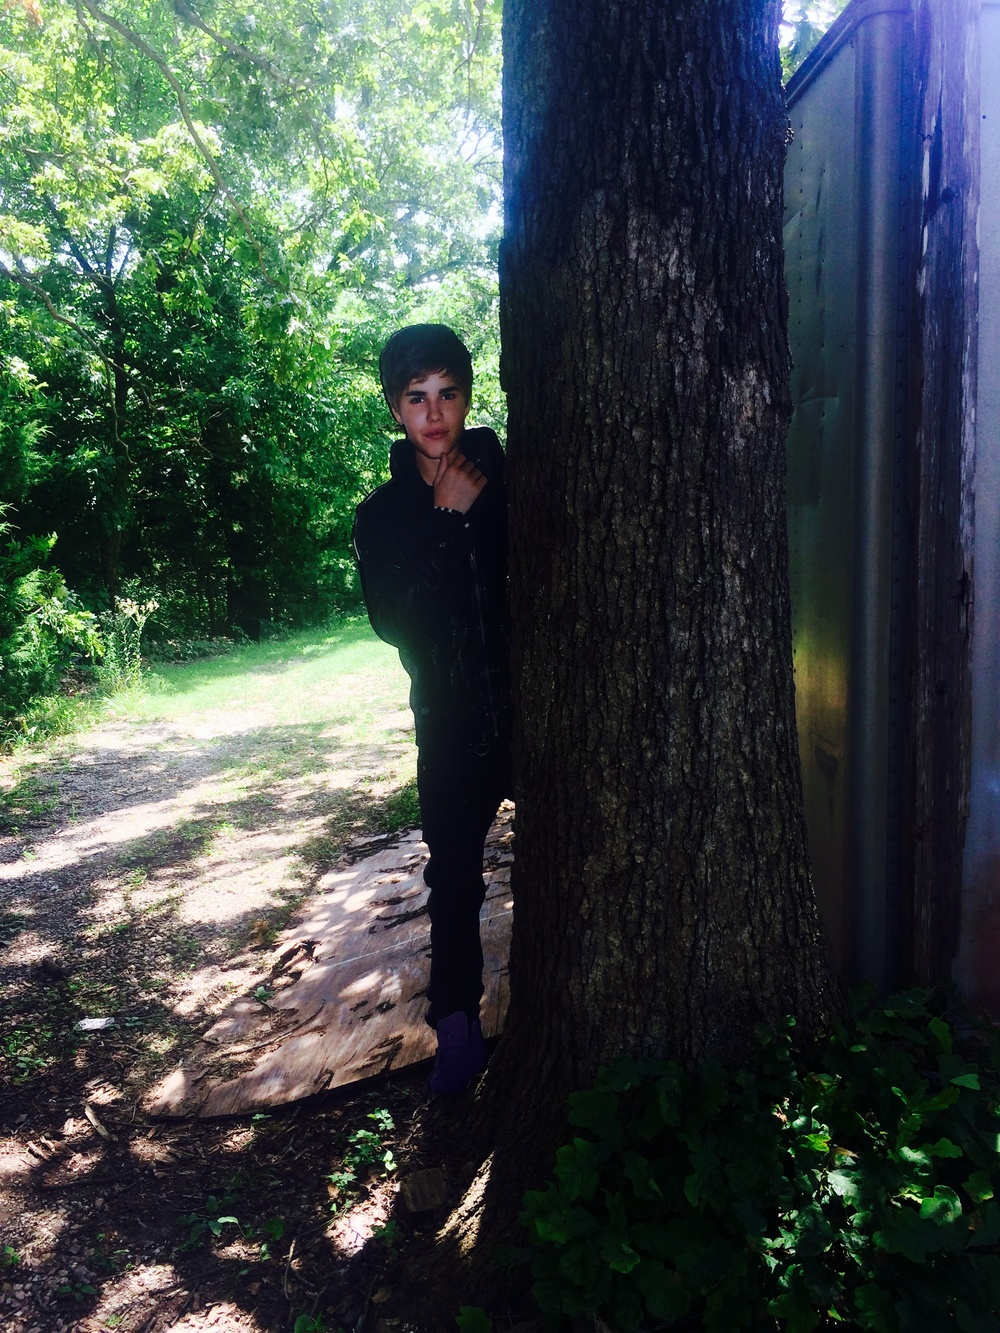 Bieber often lurks behind trees at lunch stops